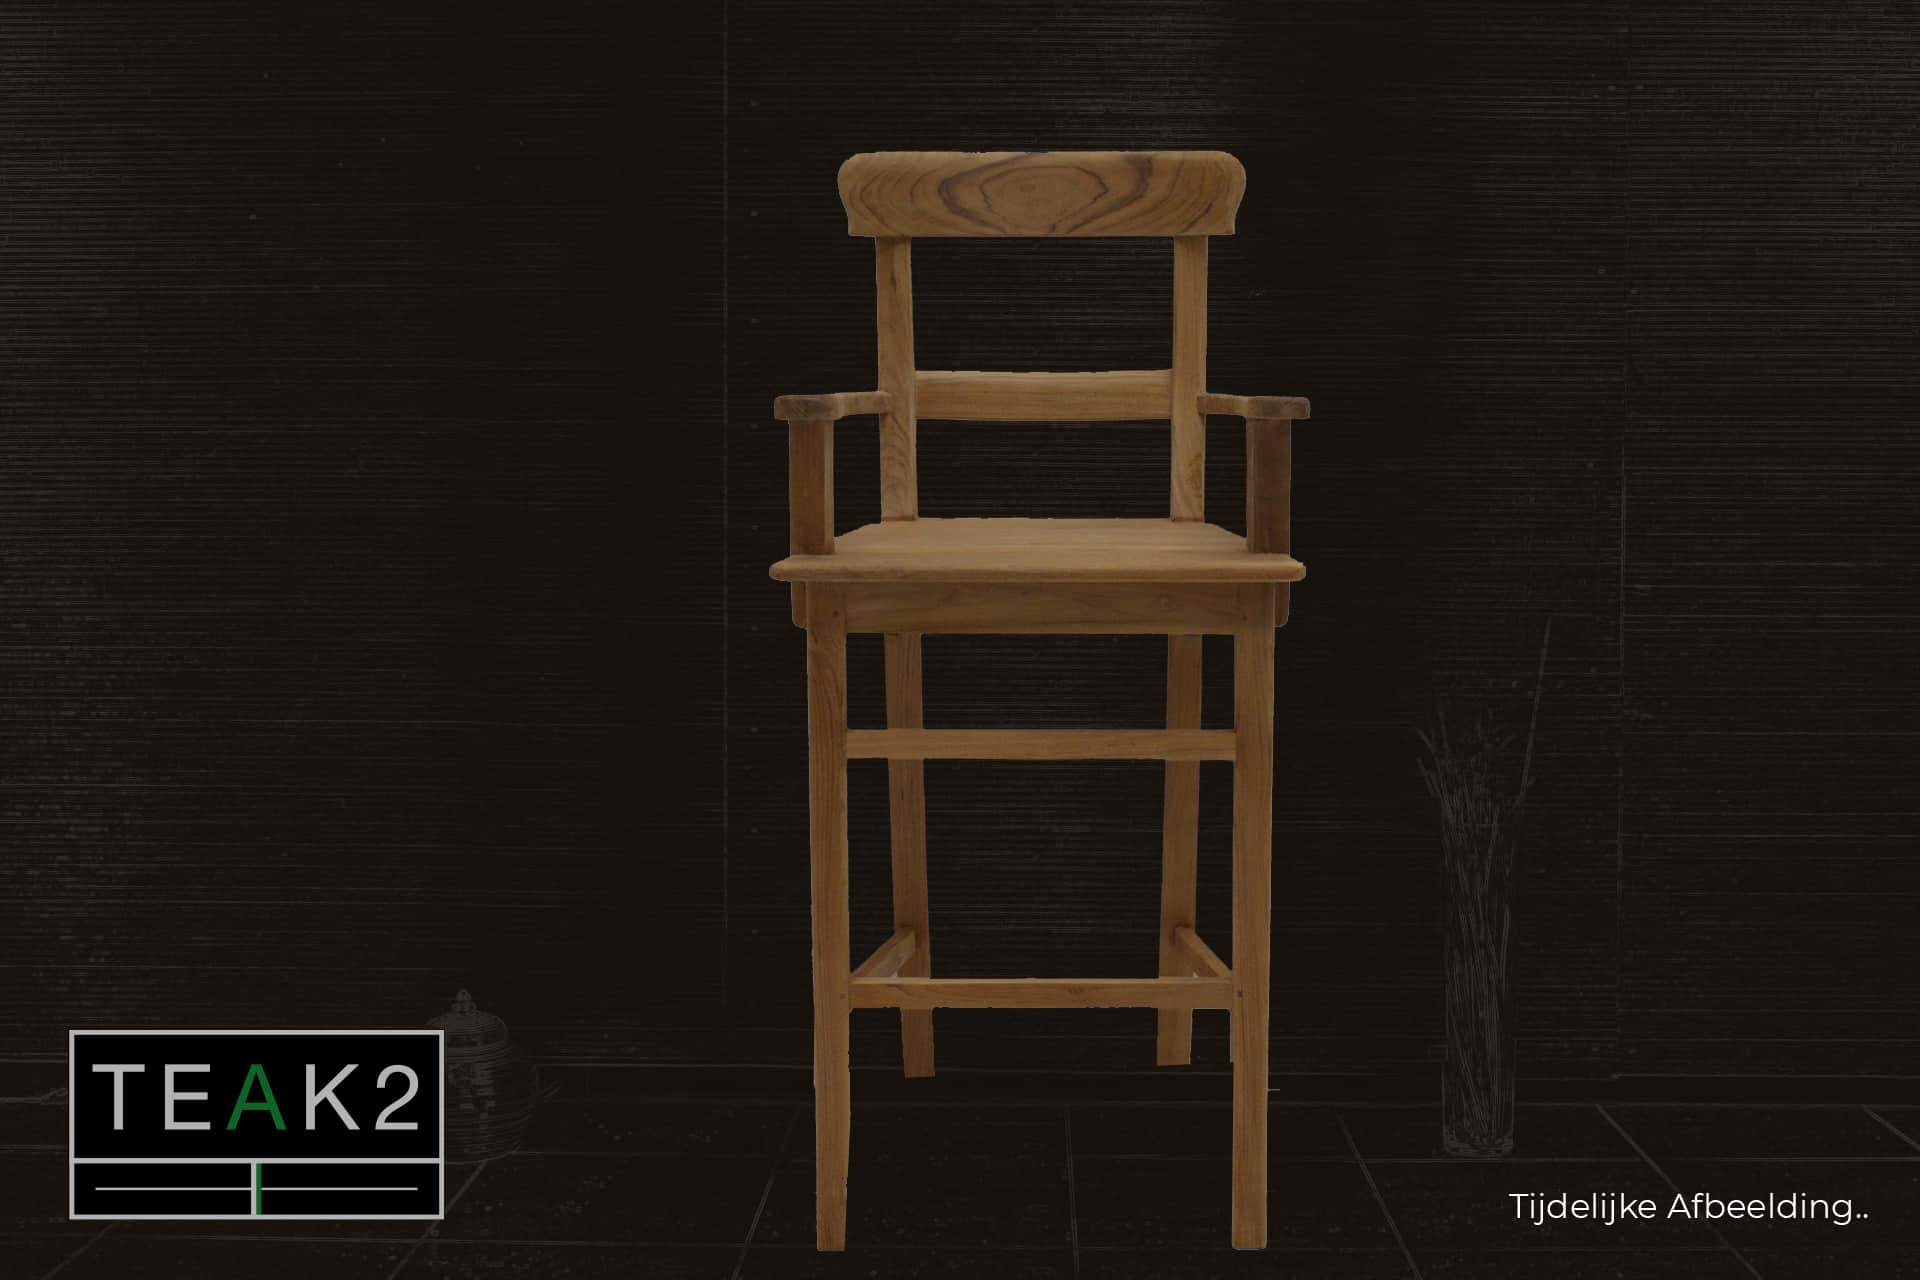 Bar stool Teak Kursi Arm | modern wooden bar stool with armrest in smooth teak. Comfortable bar stool for bar table, also suitable for catering - TEAK2.